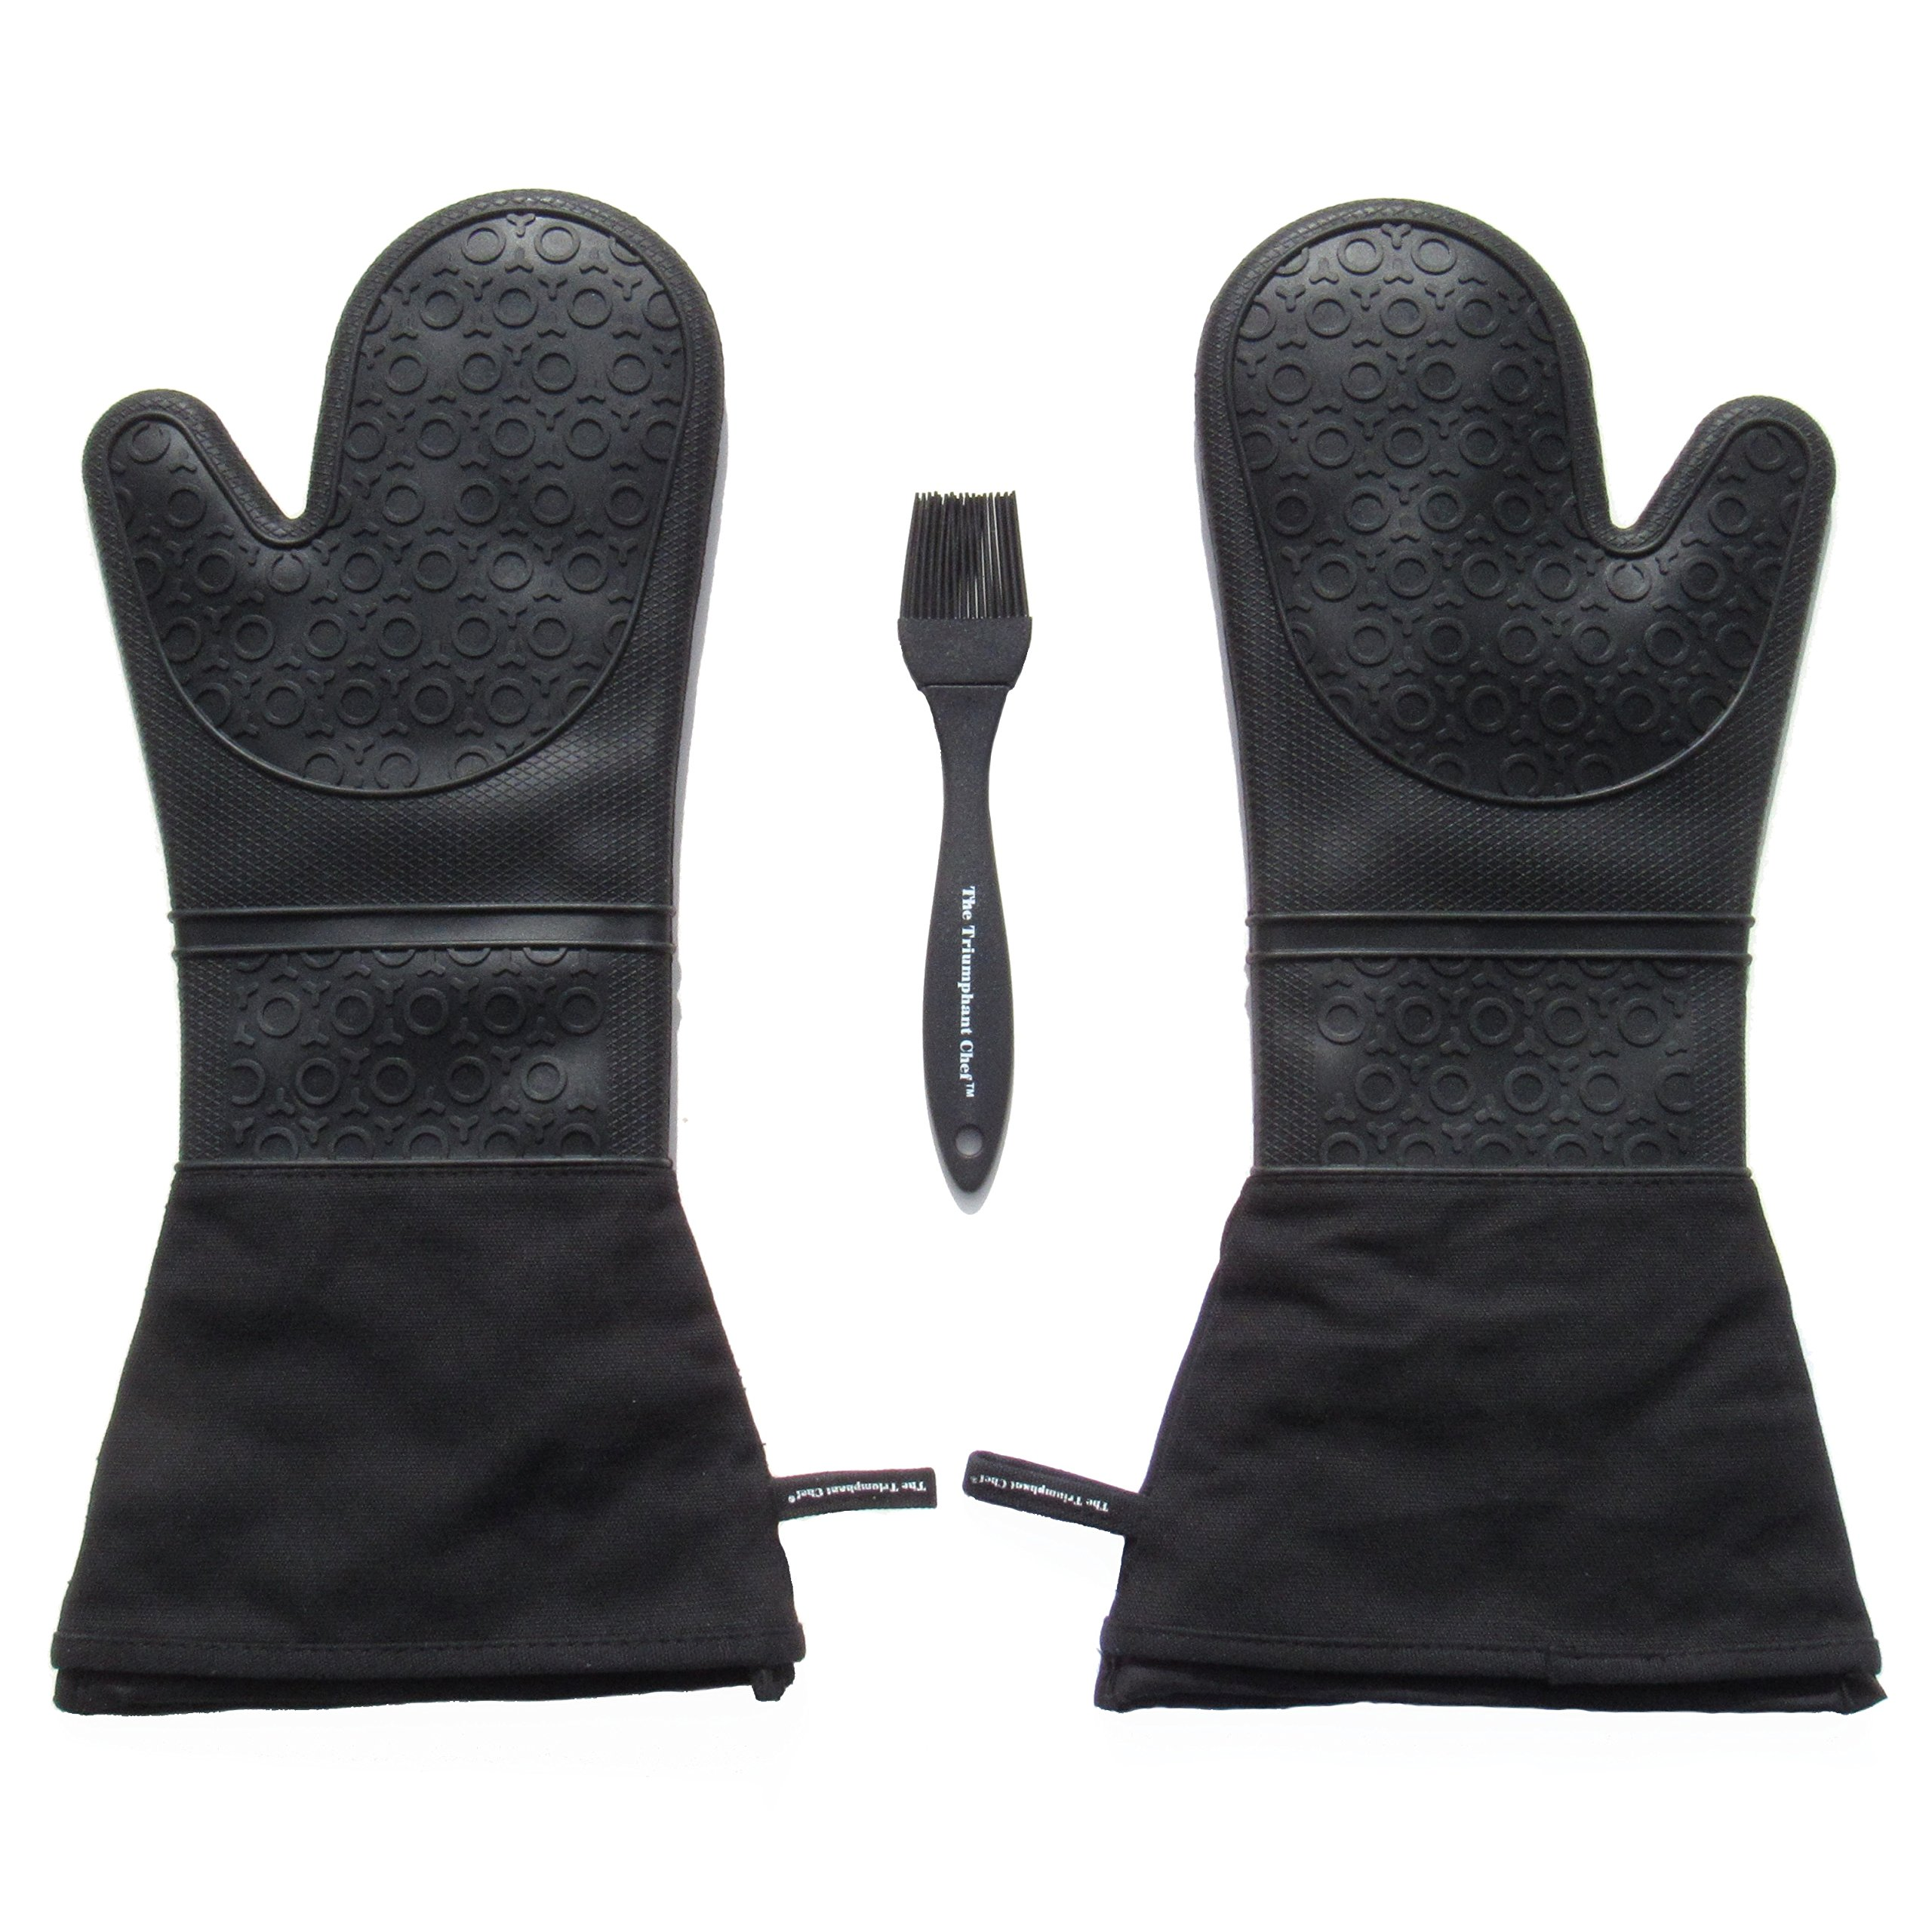 The Triumphant Chef Super Flex Extra Long 17'' Silicone Oven Mitt, Removable Quilted Liner, 1 Pair, Bonus Brush (Charcoal Black)